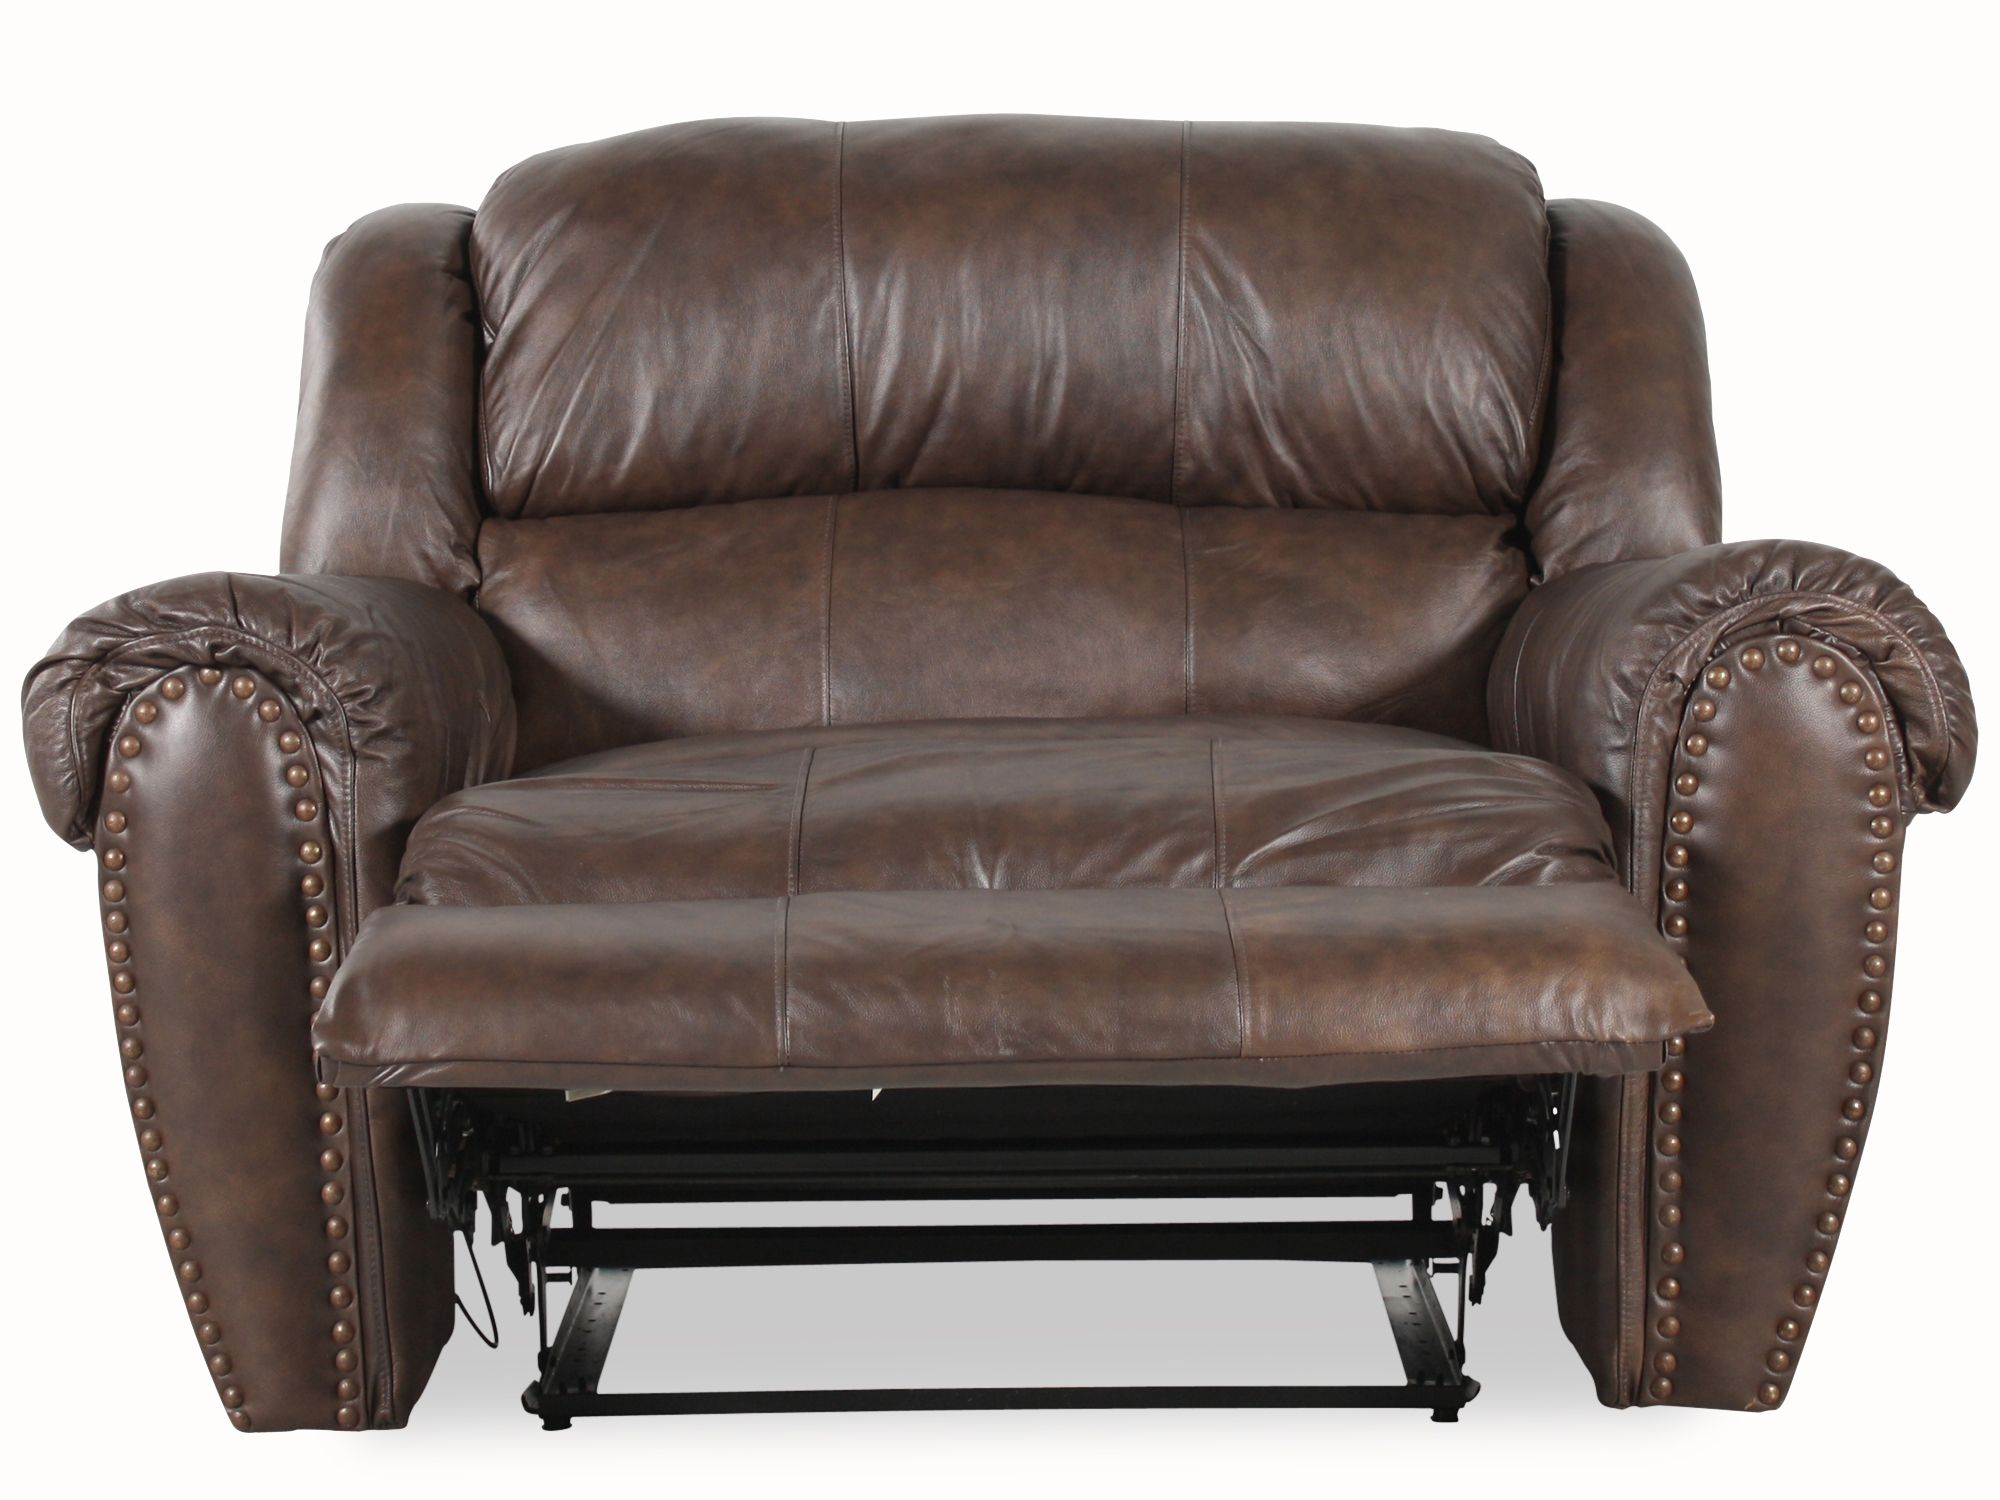 Lane Summerlin Snuggler Leather Recliner Mathis Brothers Furniture